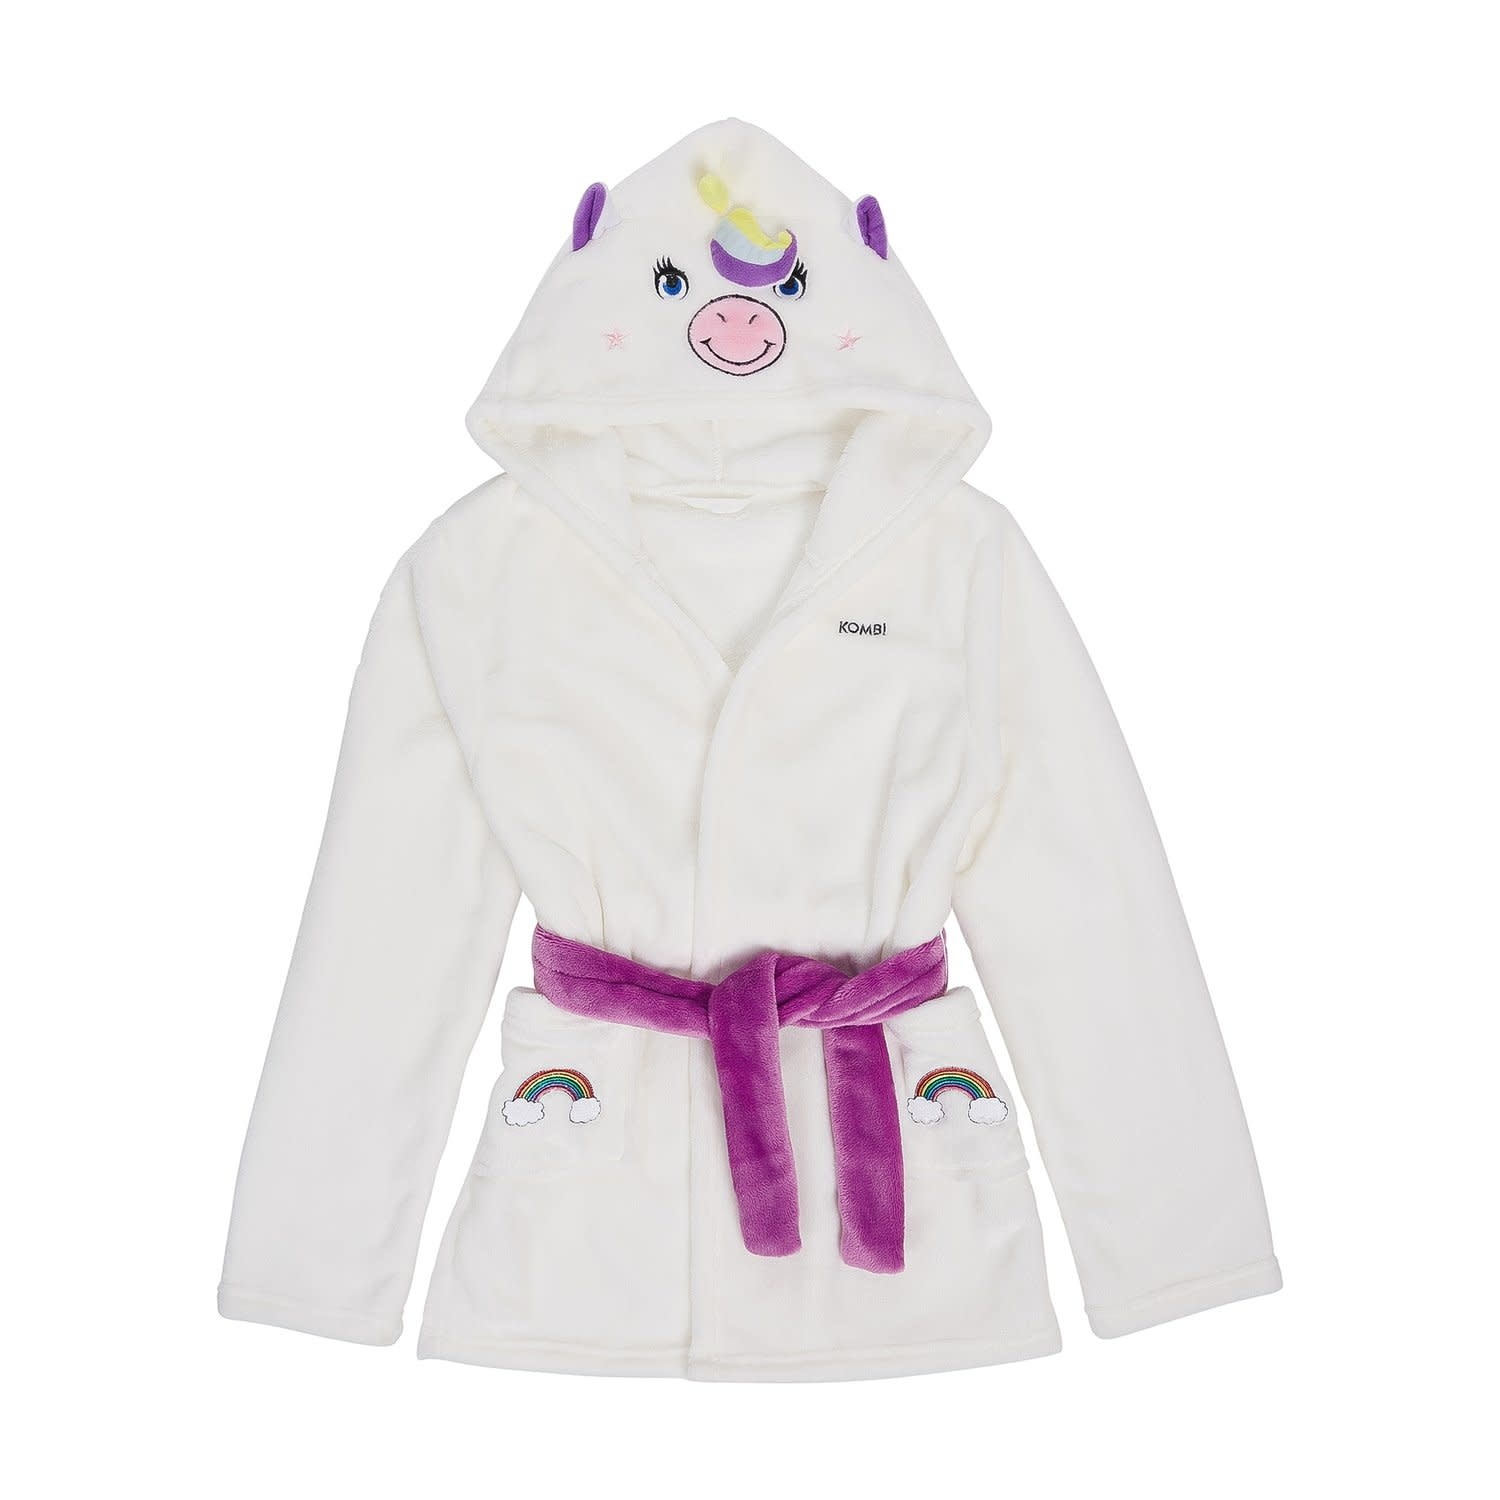 Kombi The Cozy Animal Robe Children Grace the Unicorn